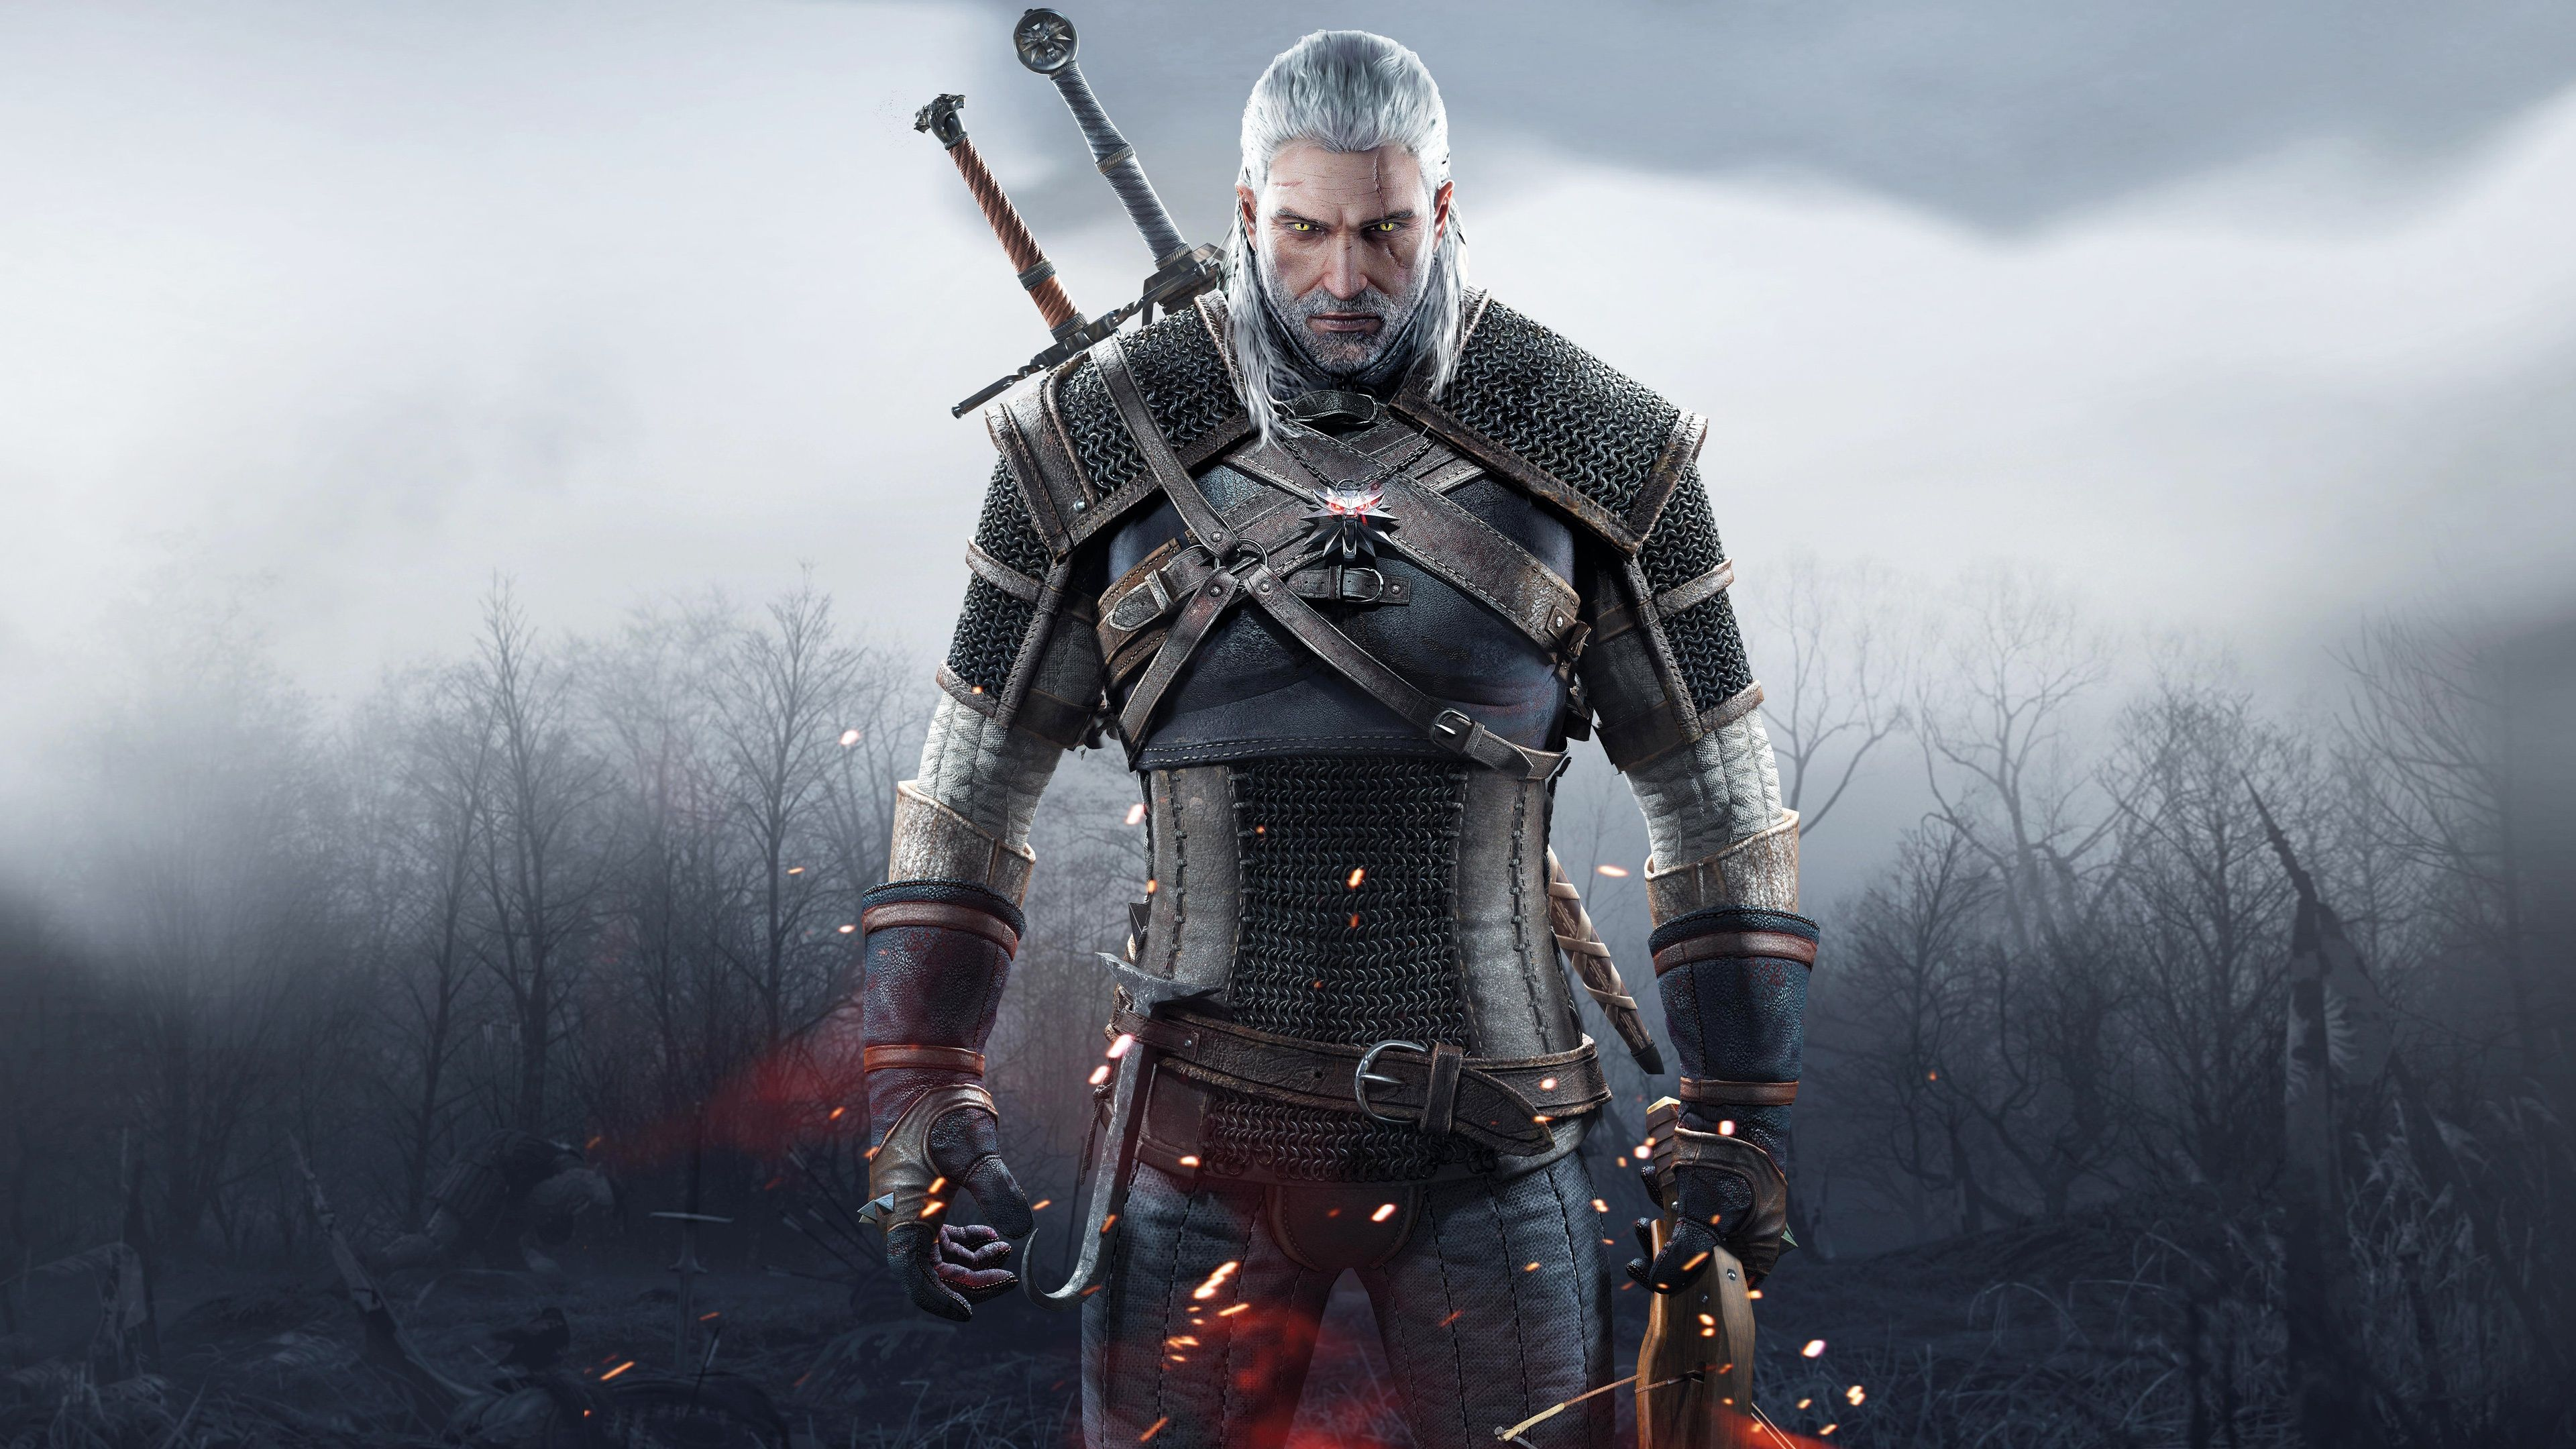 Witcher 3 wild geralt of rivia Ultra HD 4K Wallpapers